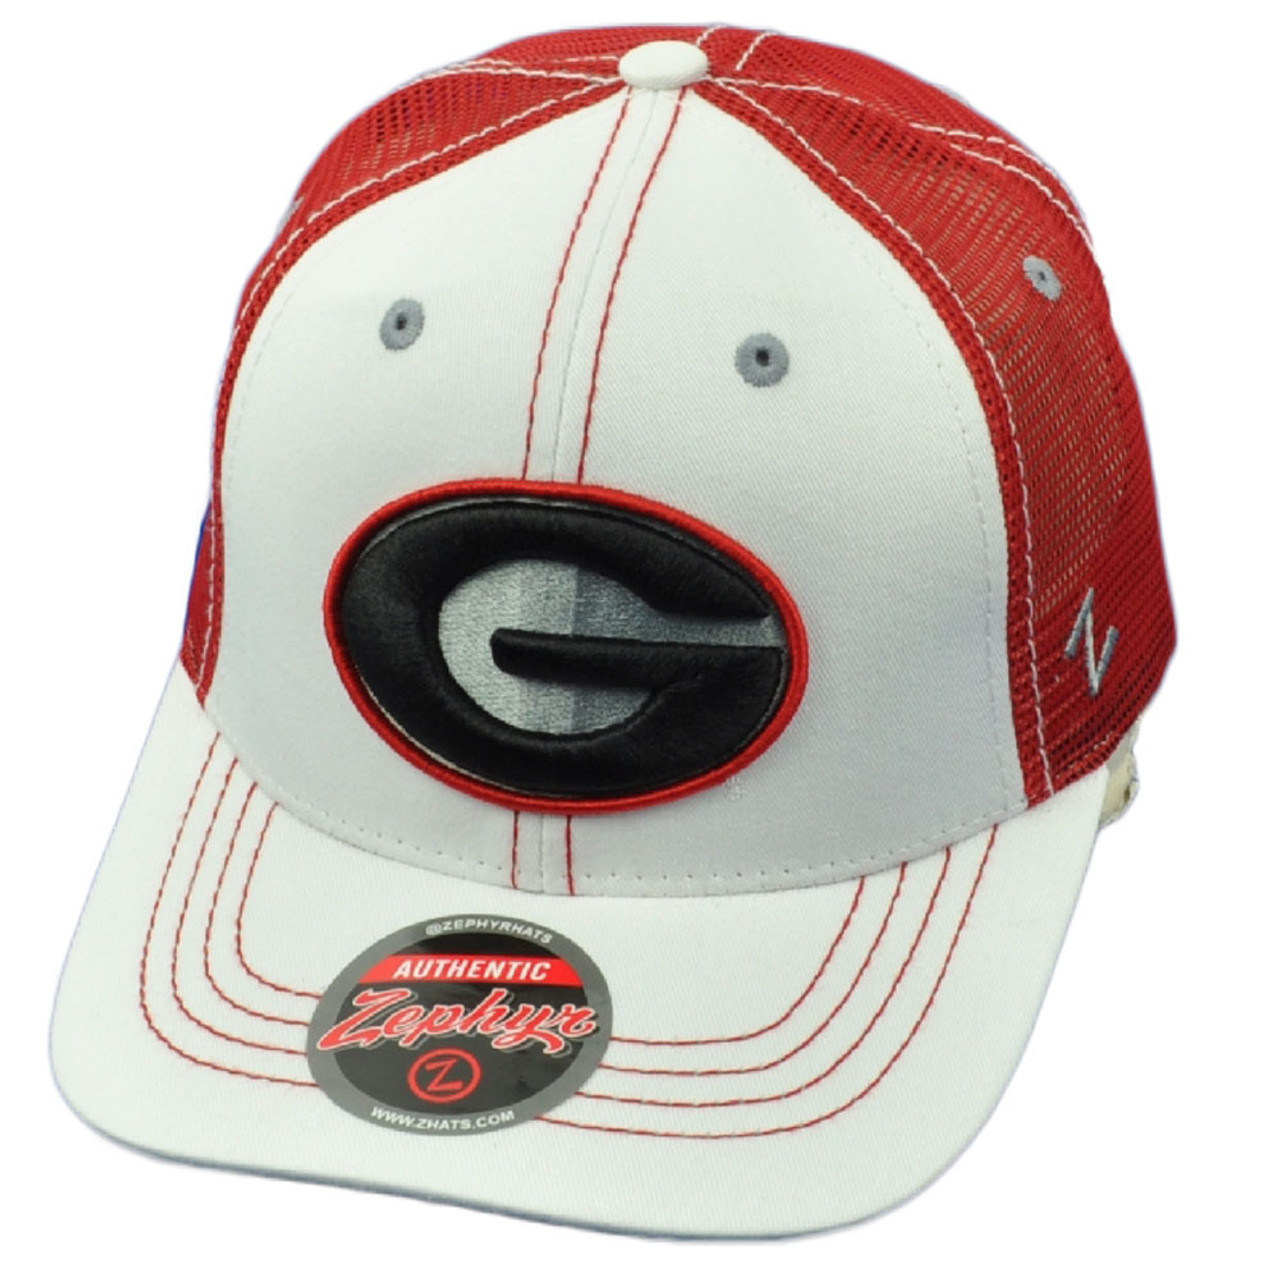 timeless design e81ab c47a2 NCAA Zephyr Georgia Bulldogs Mesh Trucker Hat Cap White Red Snapback Curved  Bill - Cap Store Online.com